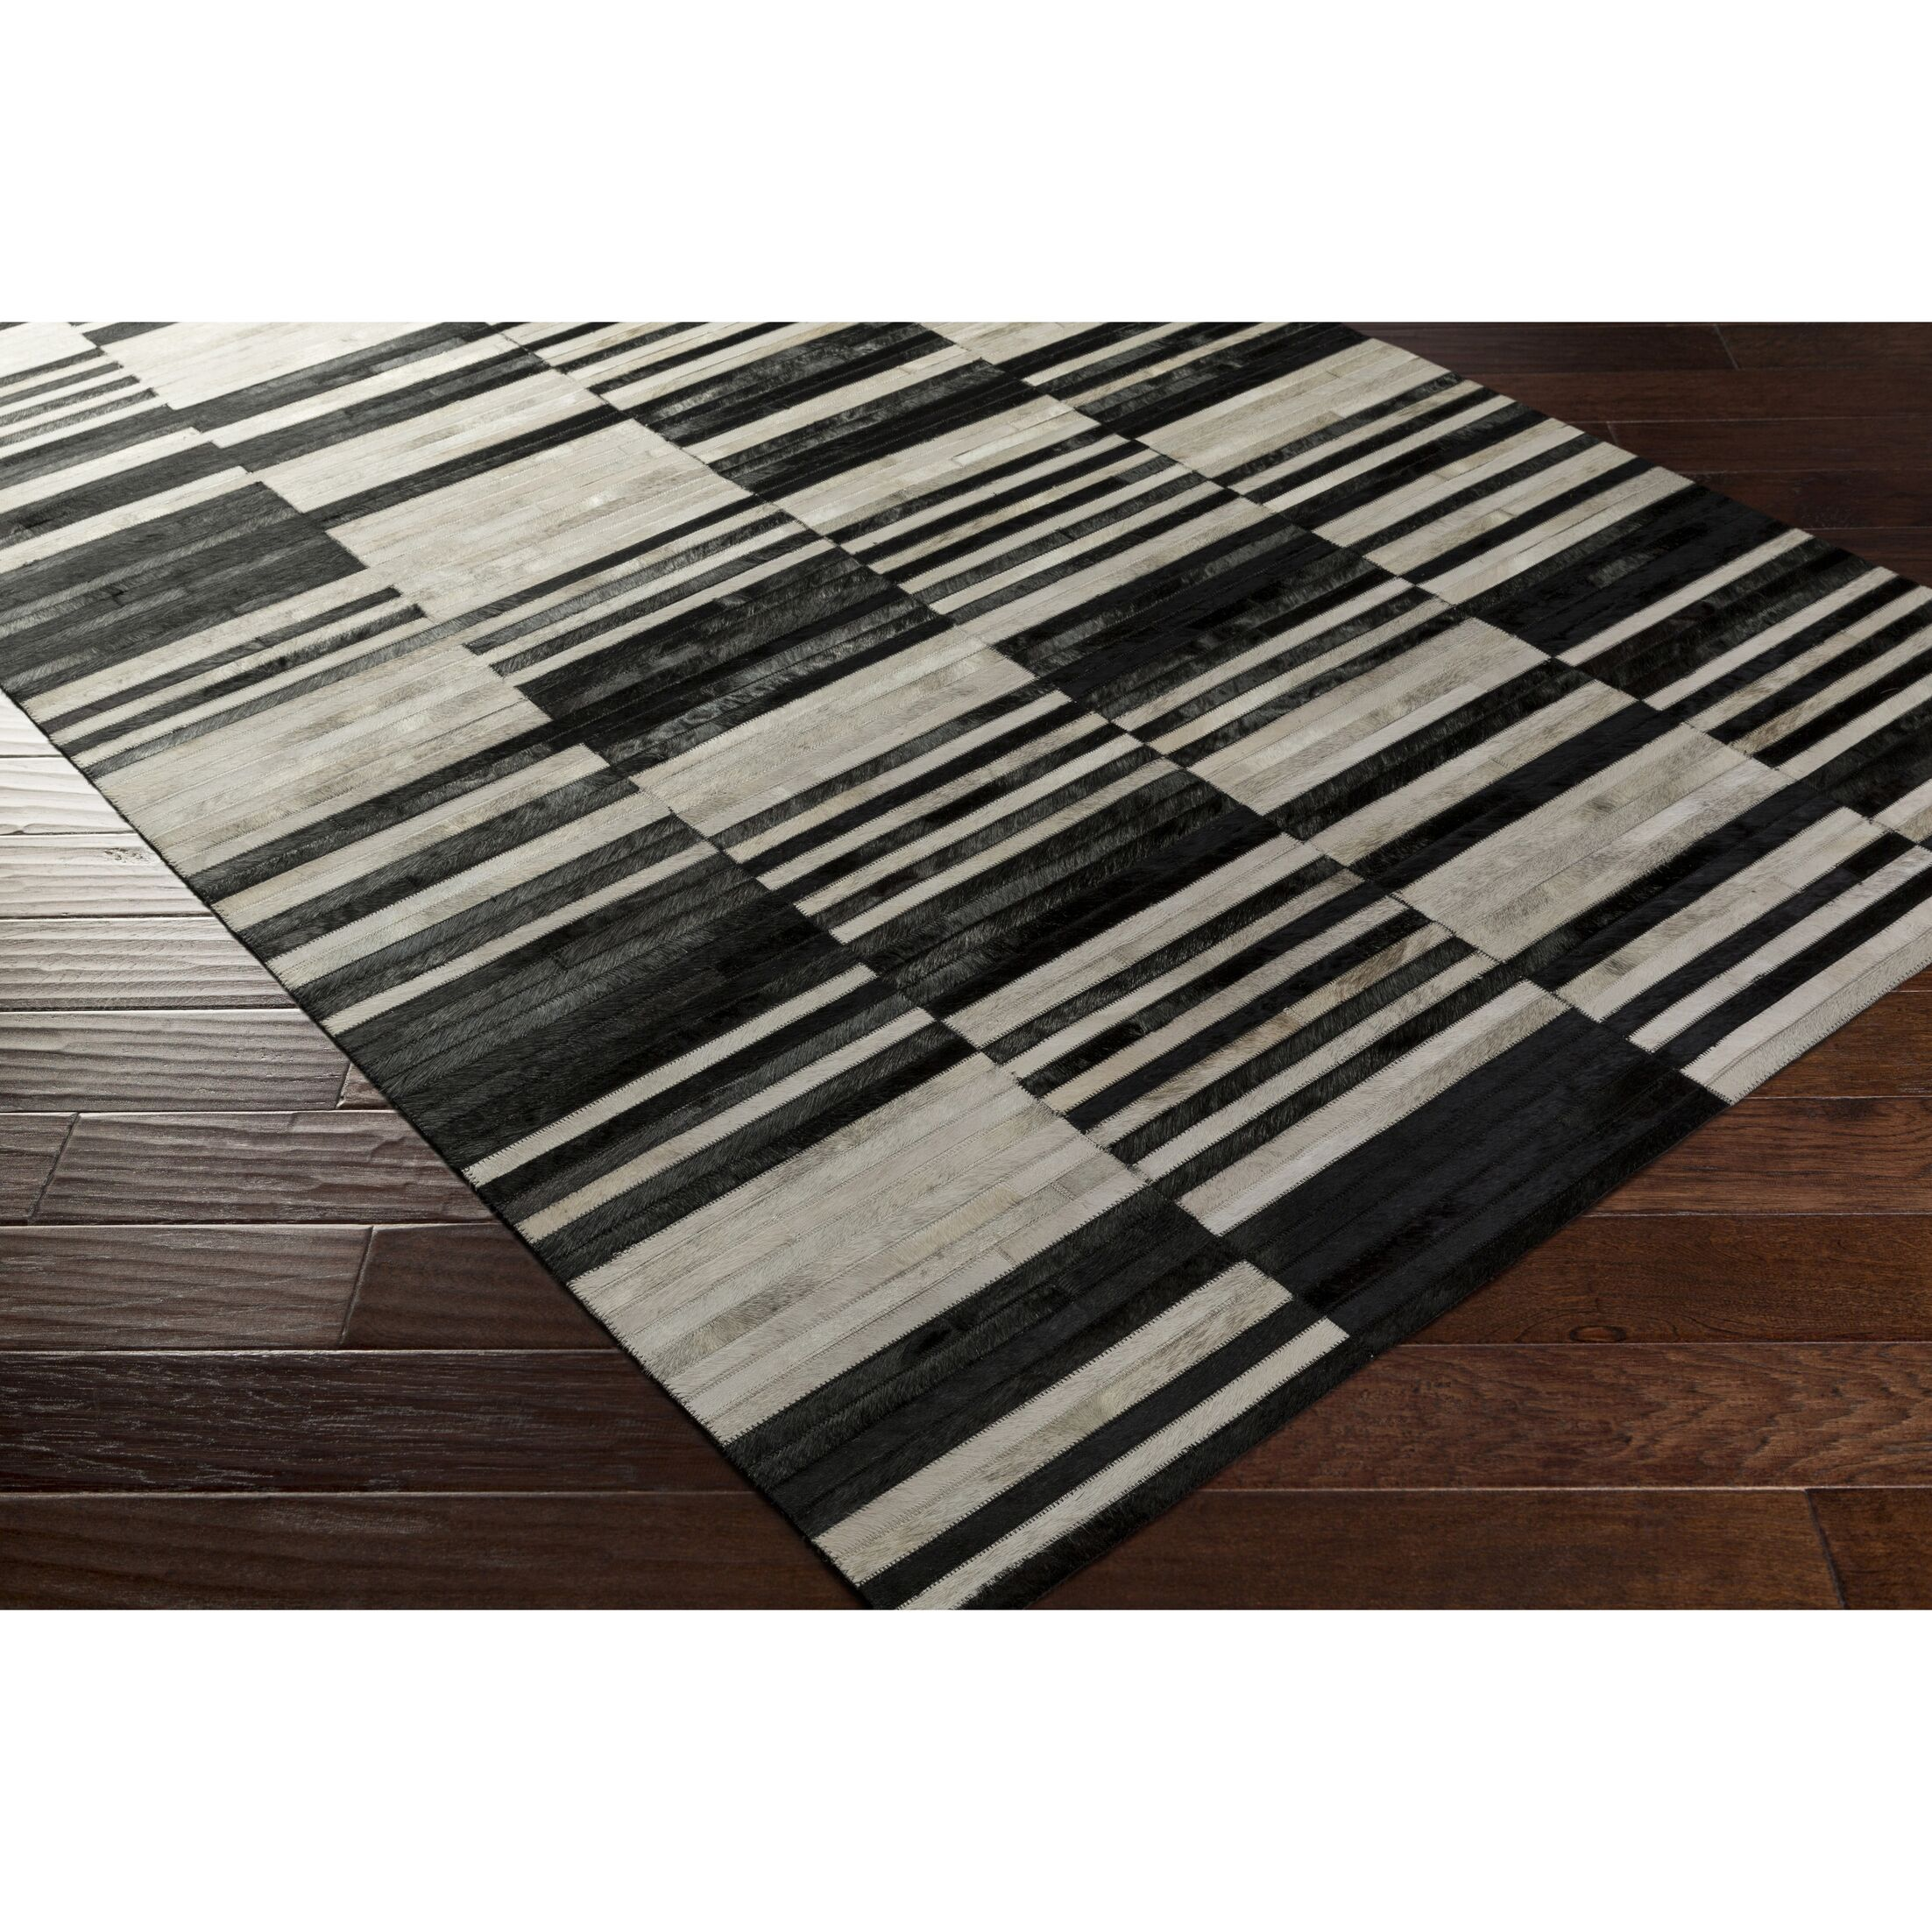 Ashley Hand-Crafted Black/Neutral Area Rug Rug Size: Rectangle 2' x 3'